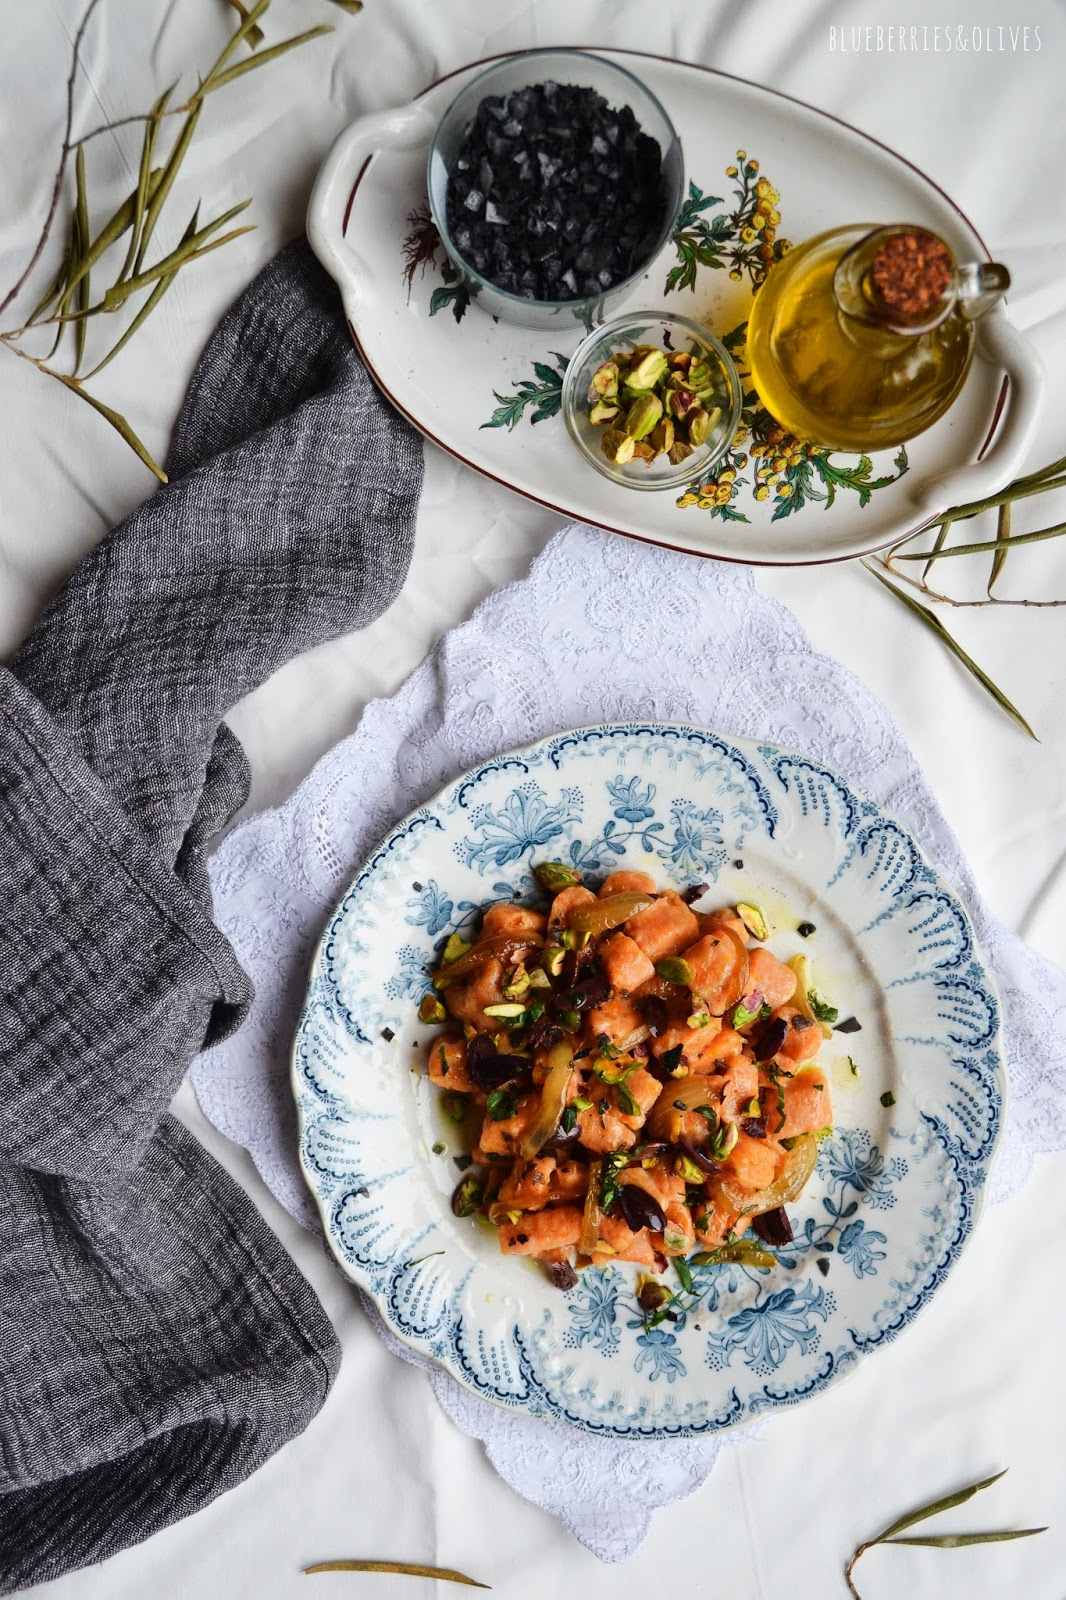 SWEET POTATO GNOCCHI WITH OLIVES AND PISTACHIOS